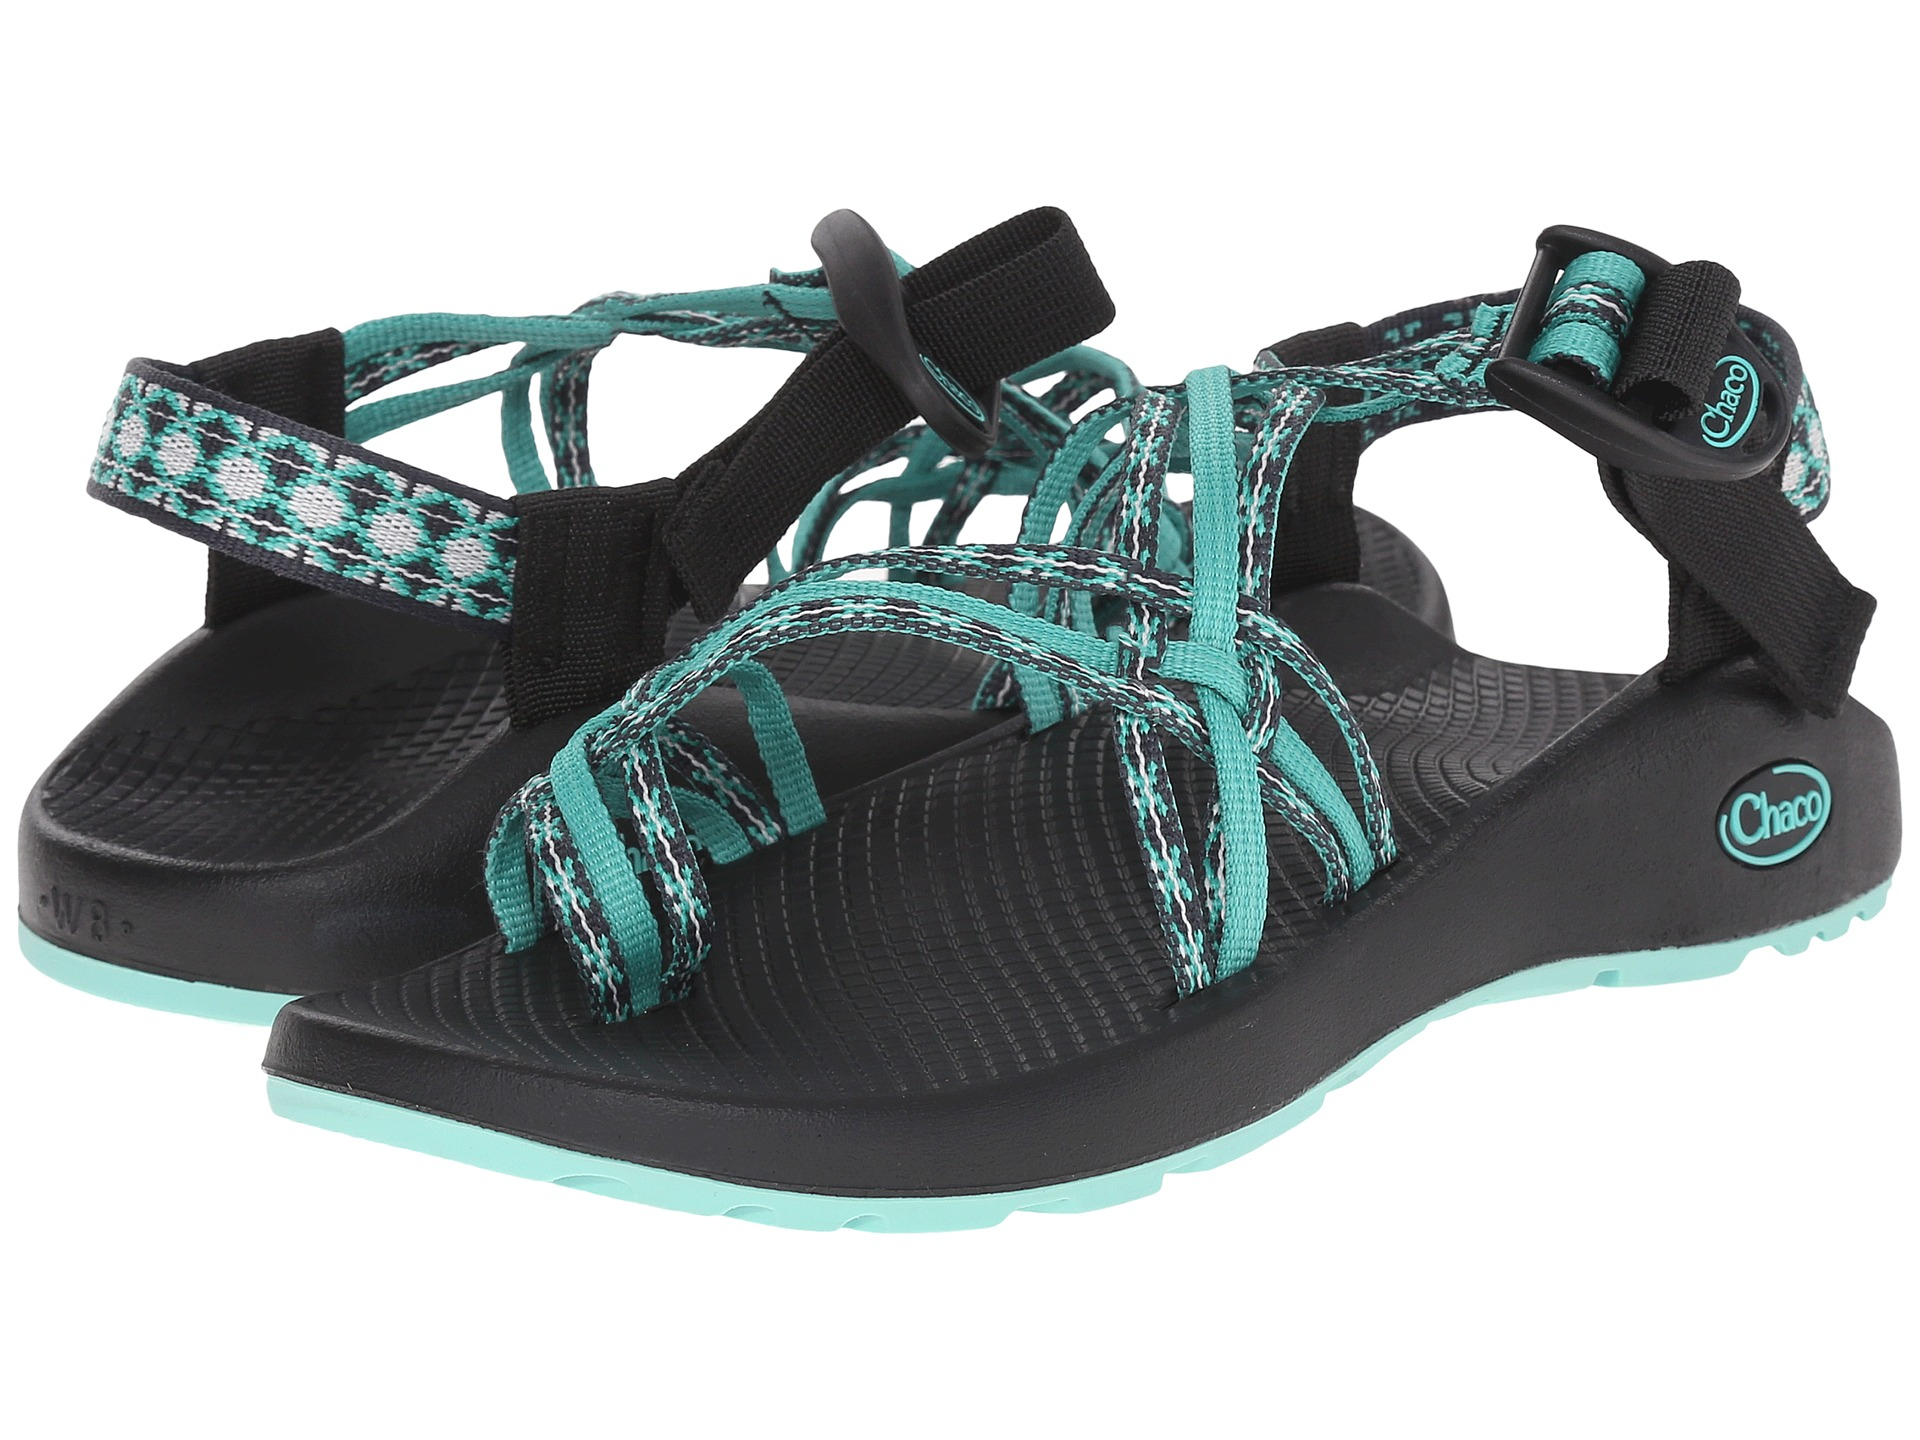 Chaco Zx 3 Classic In Blue Lyst